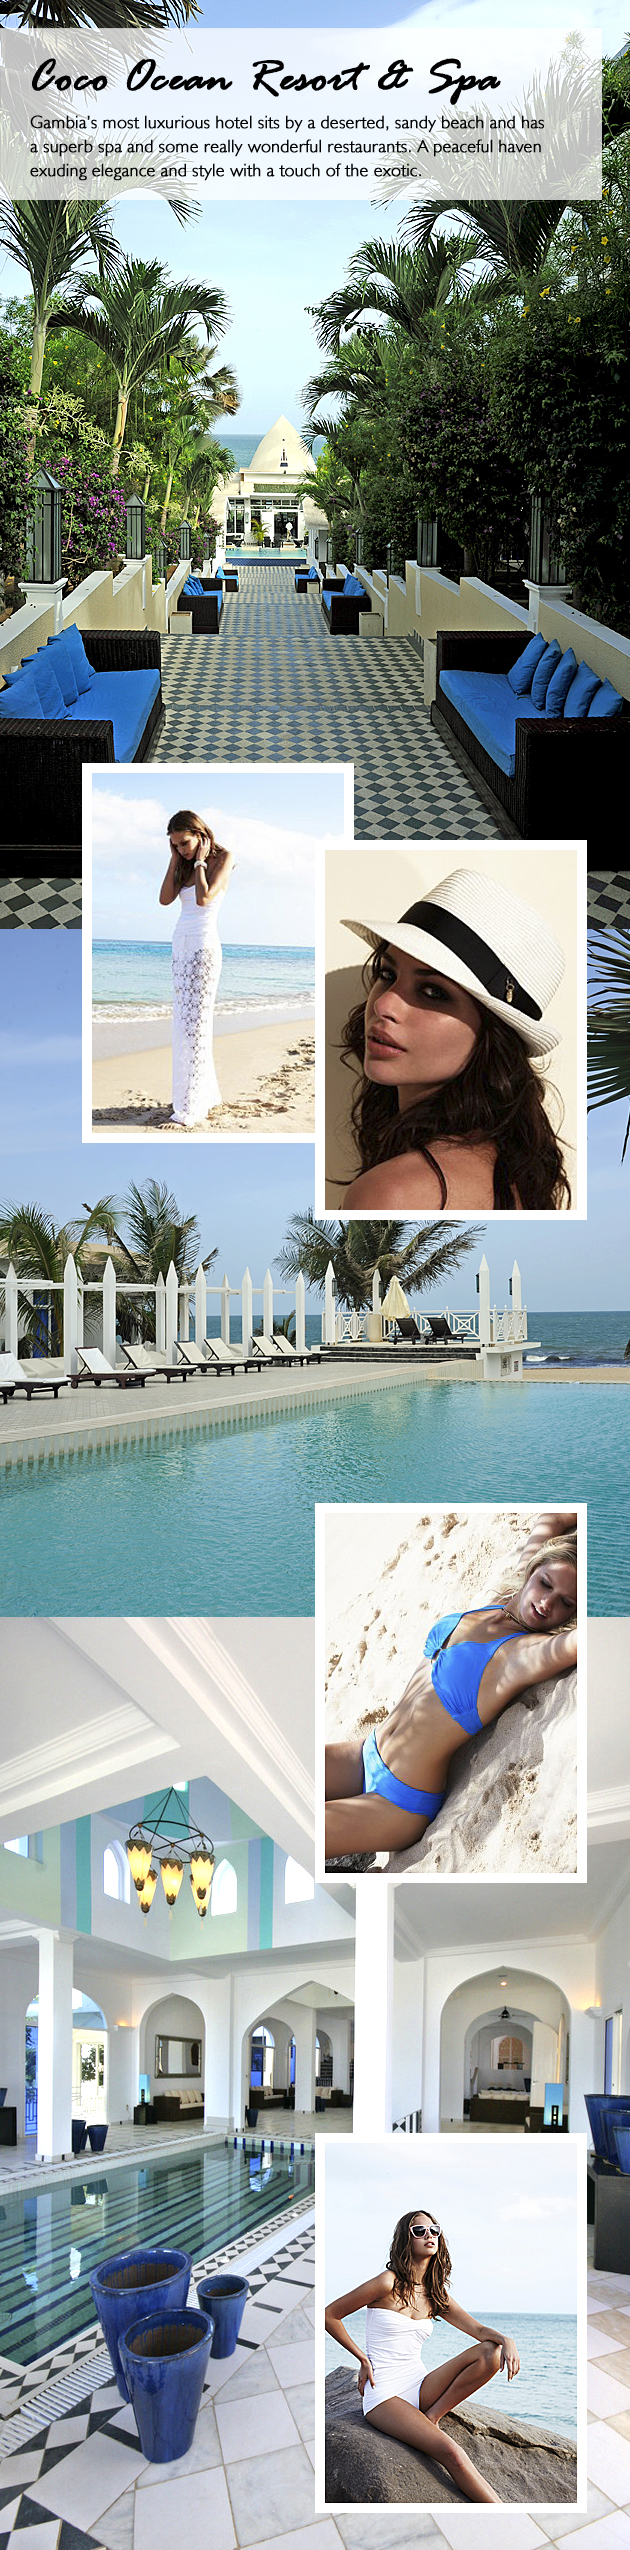 COco Ocean, The Gambia, The Luxury Look